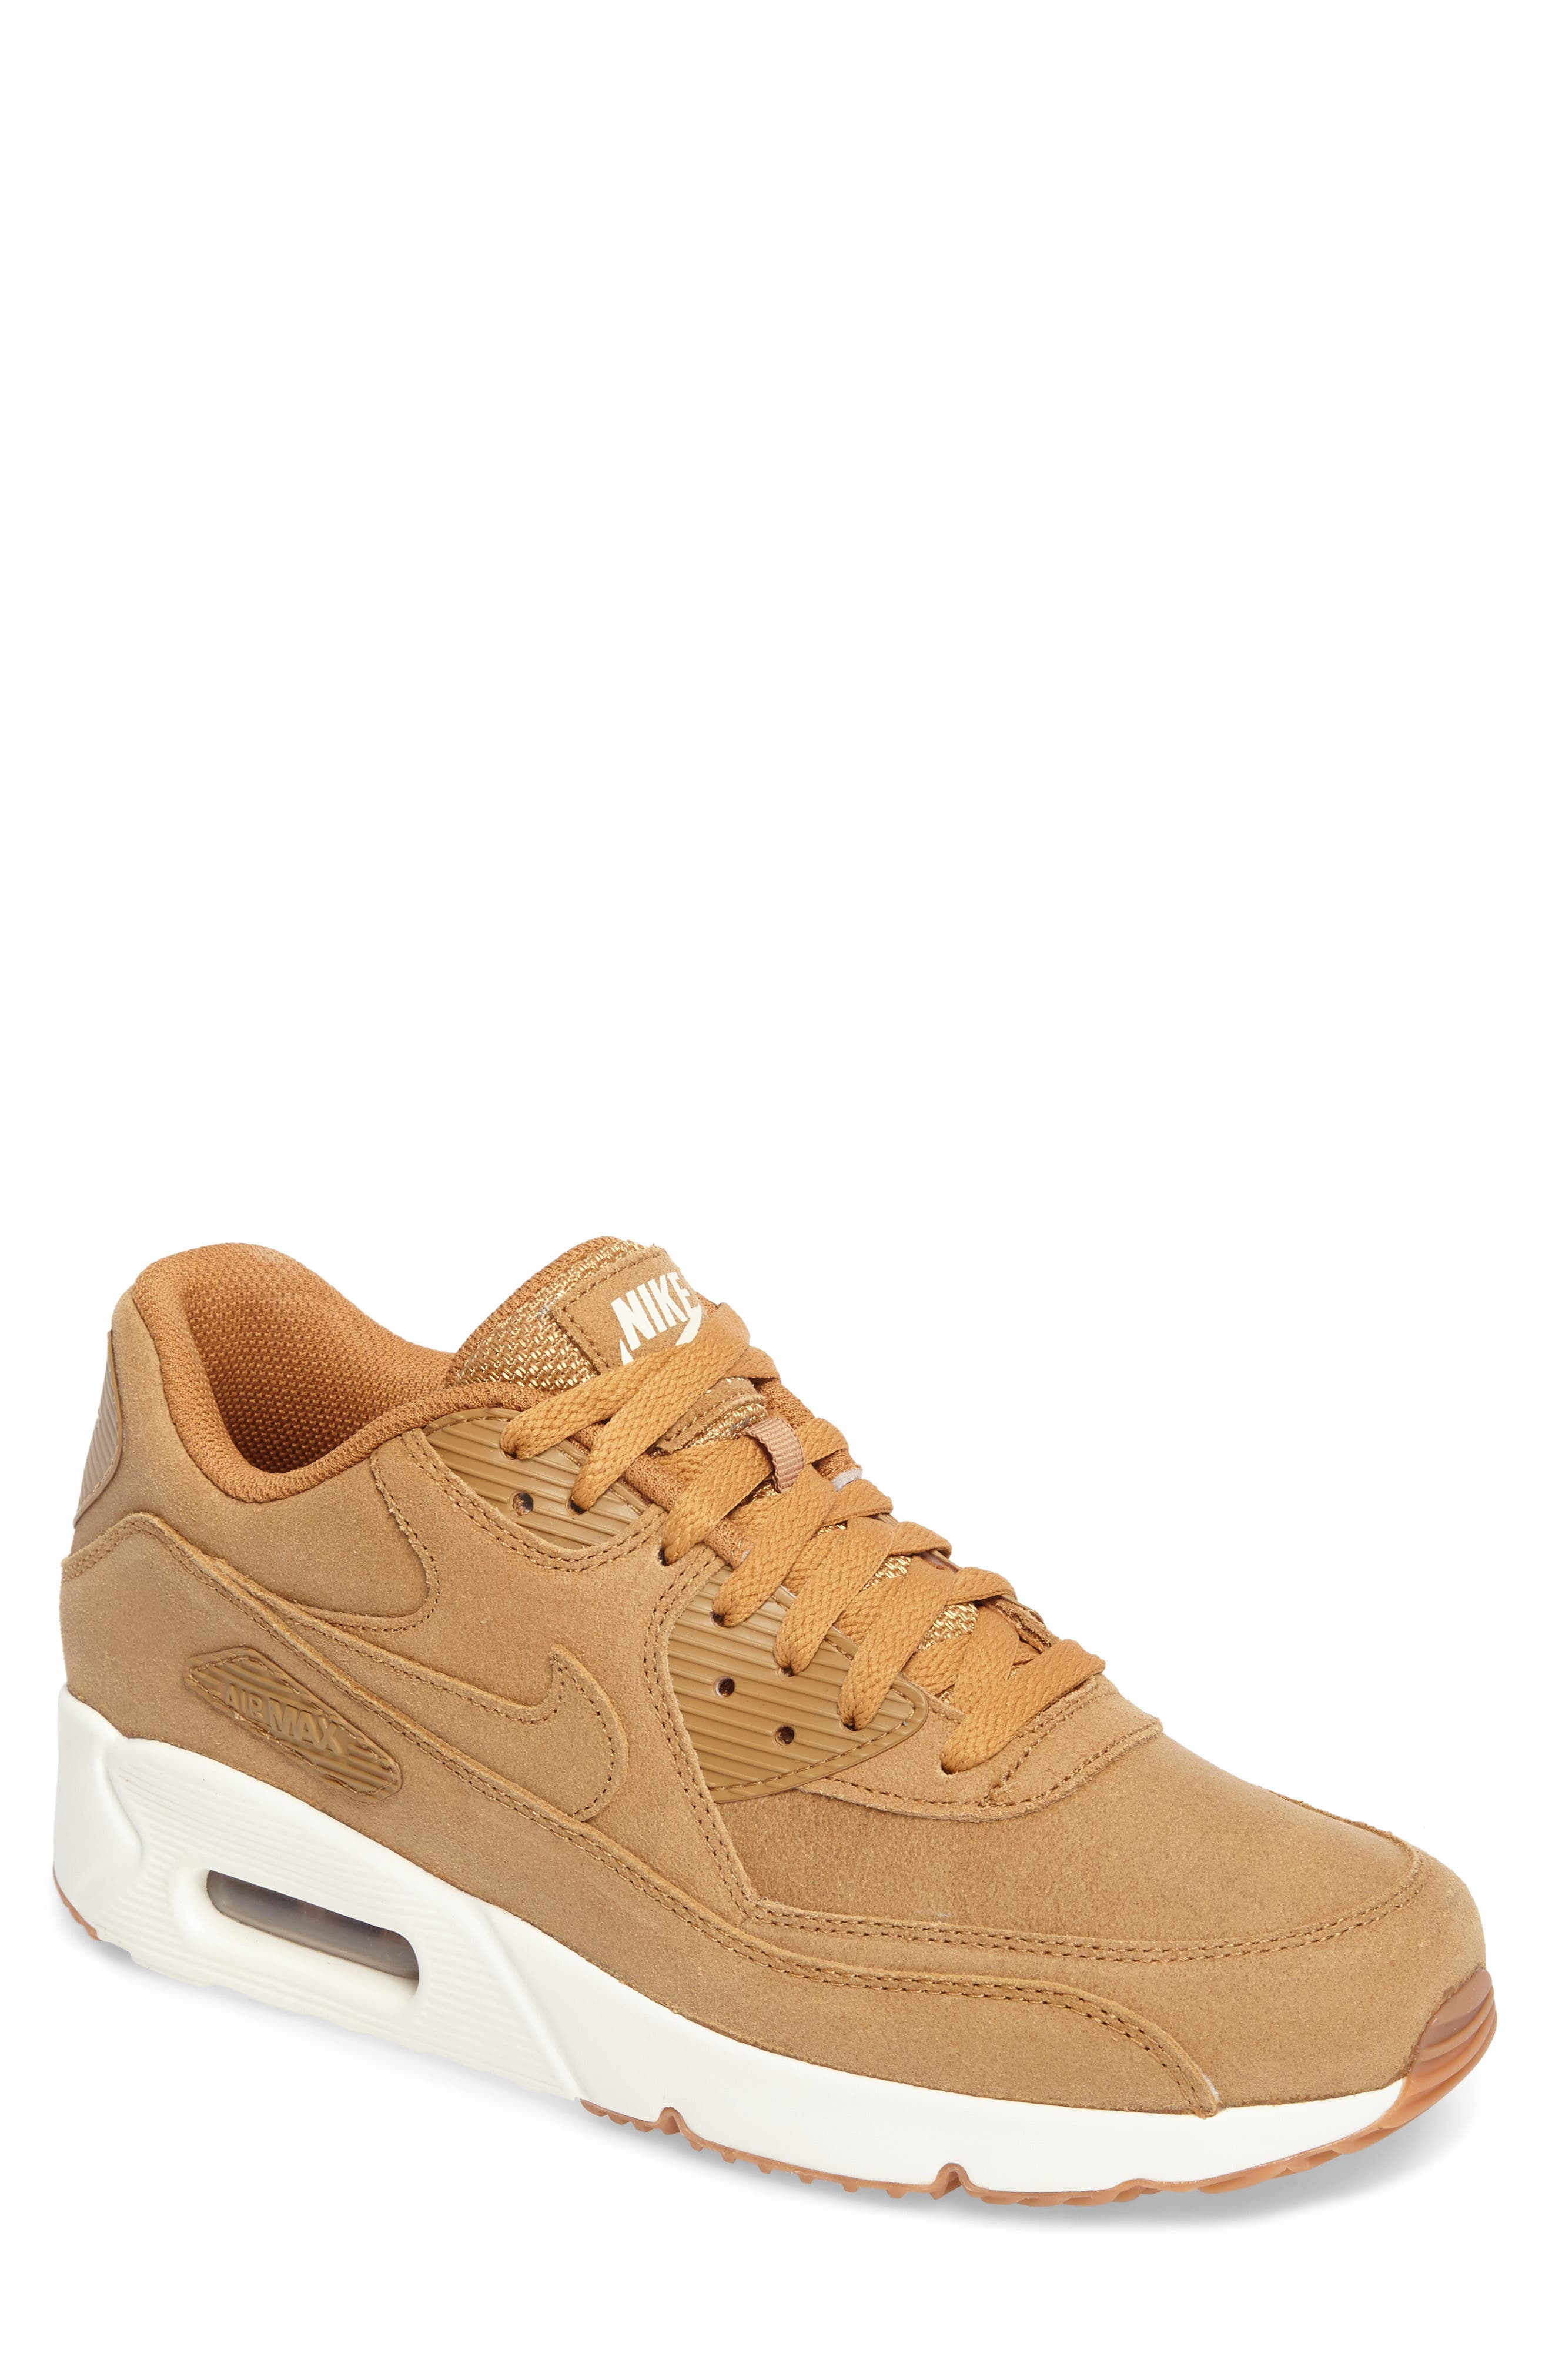 Air Max 90 Ultra 2.0 Sneaker,                             Main thumbnail 1, color,                             Flax/Flax/Sail/Gum Med Brown